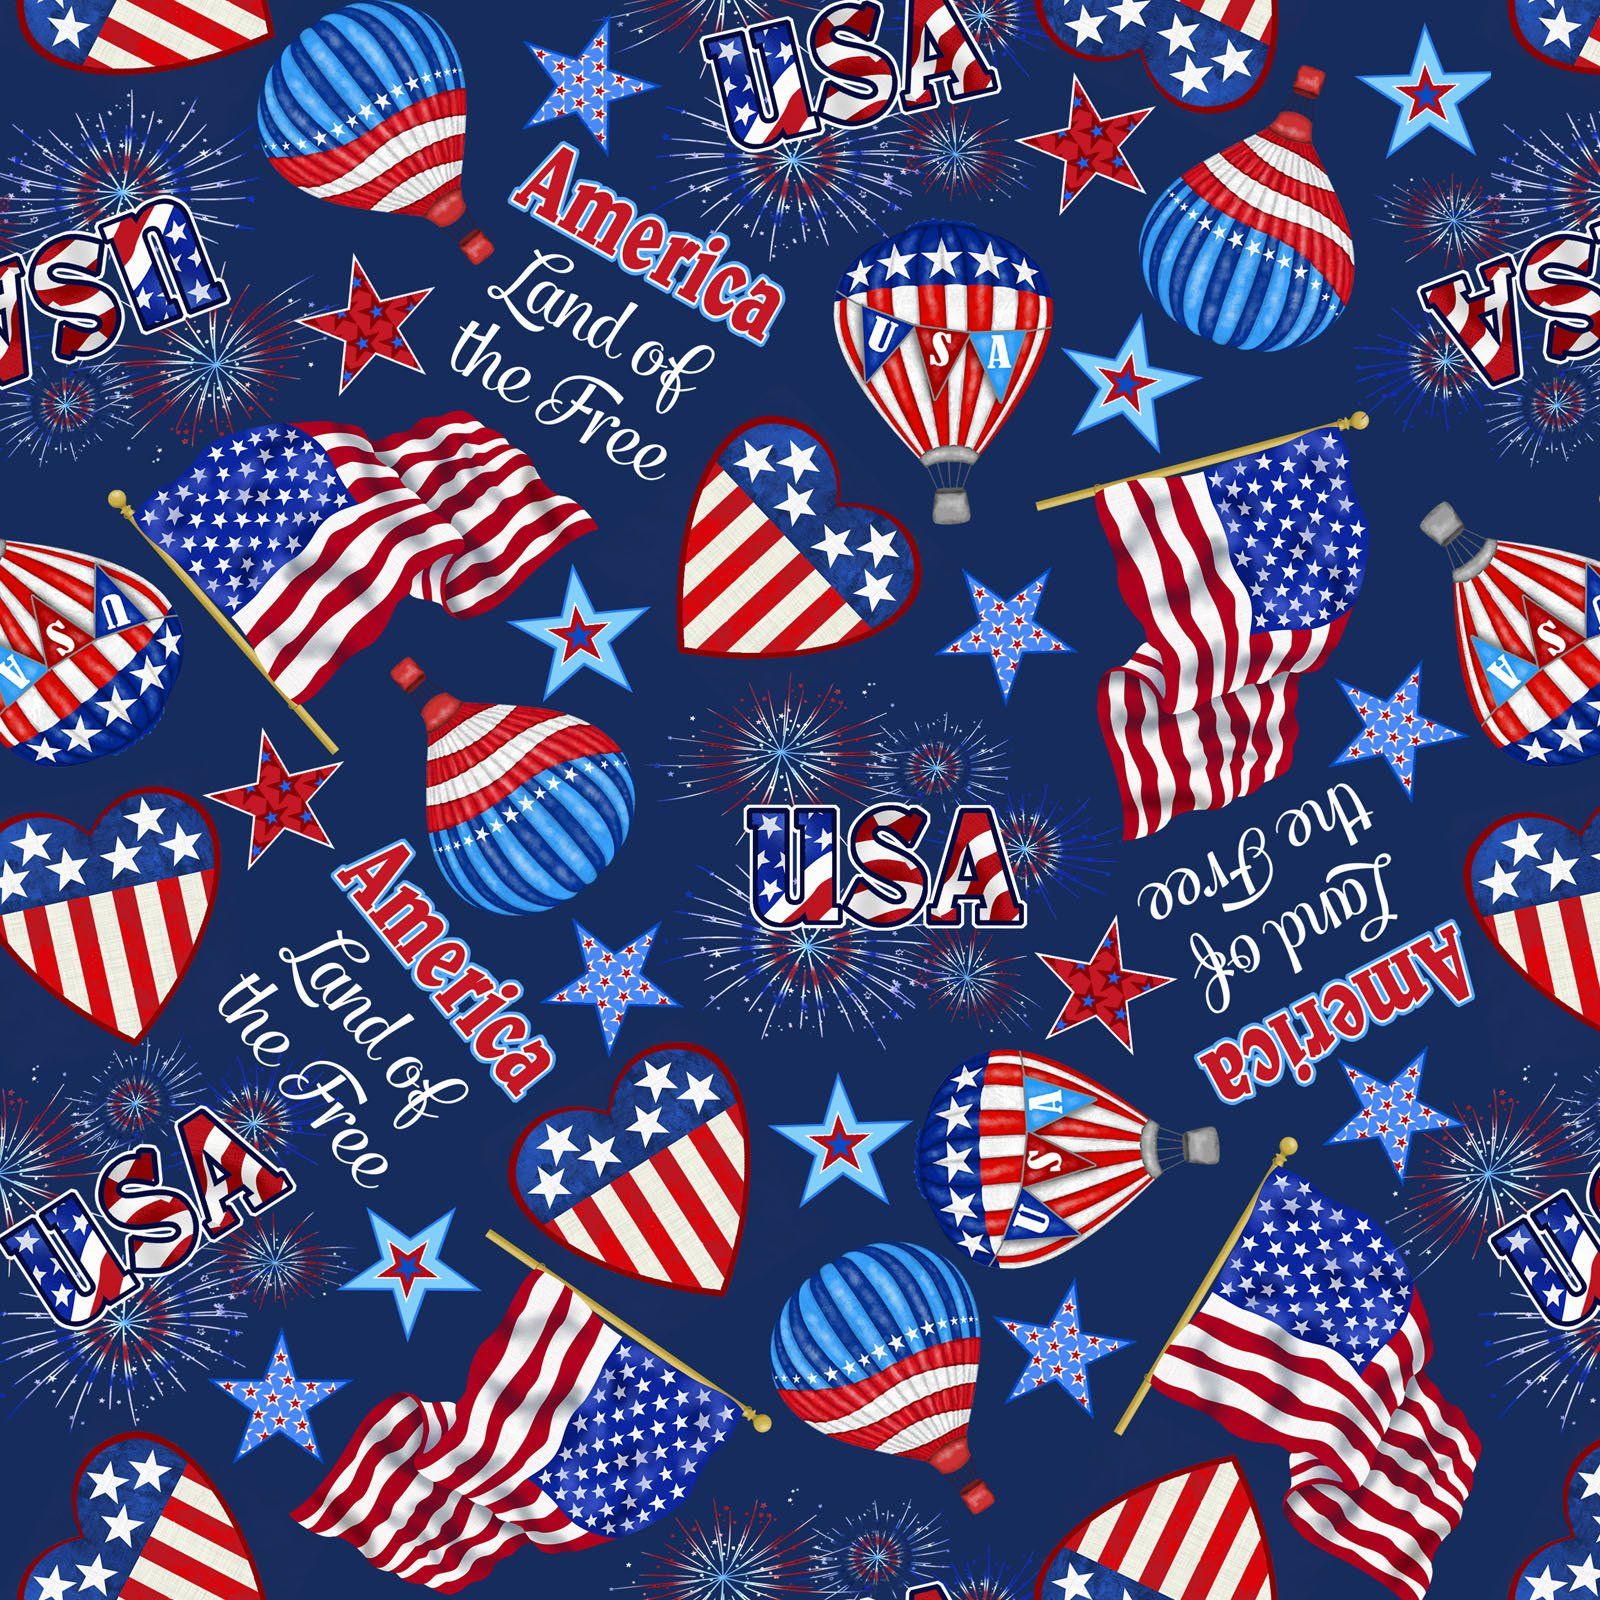 America Home of the Brave  4622-77